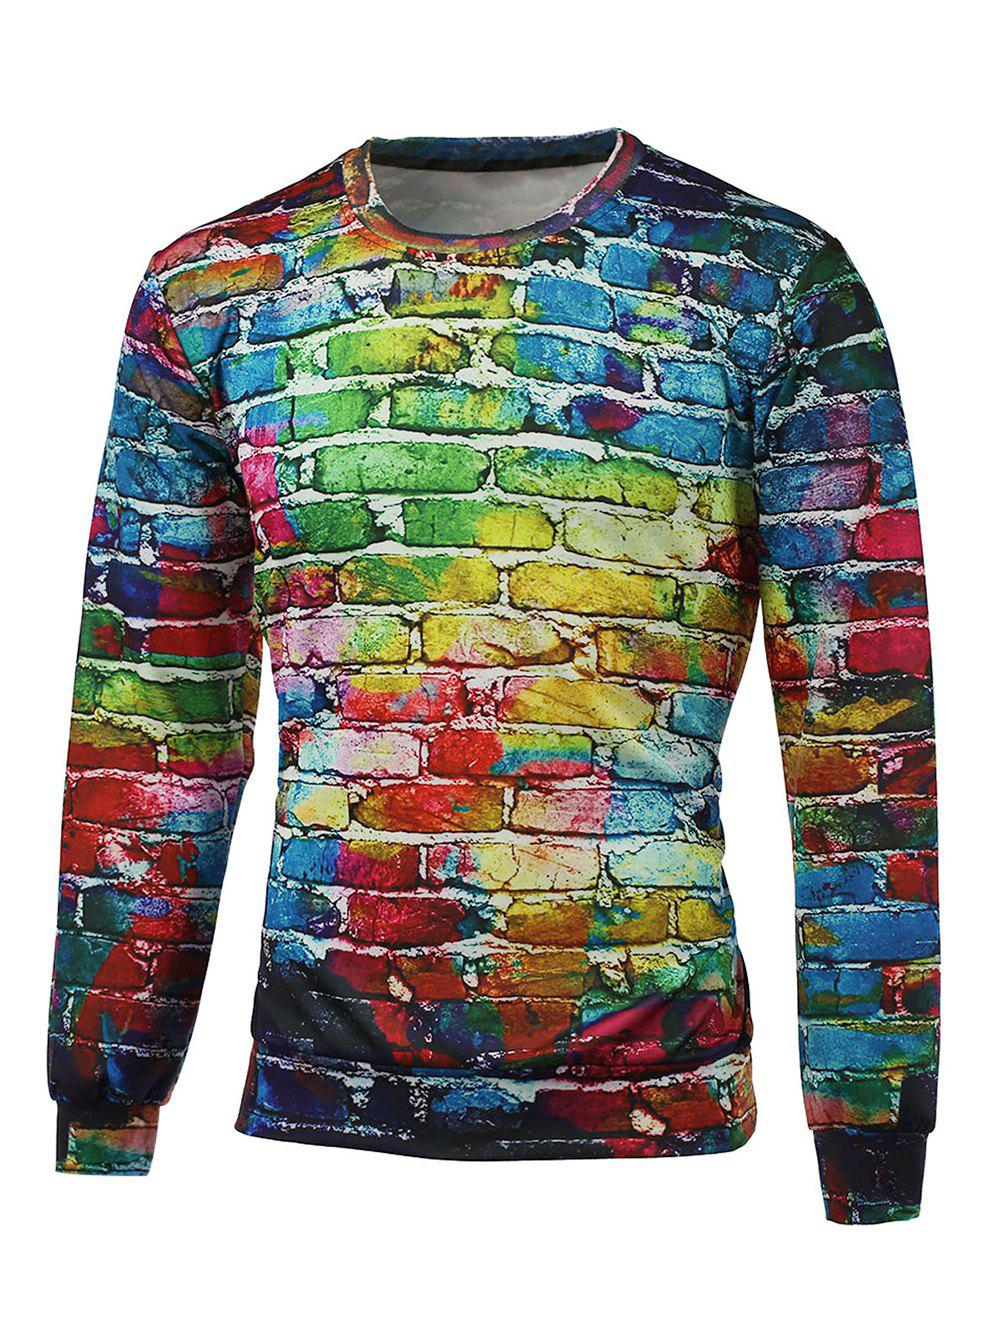 Crew Neck 3D Brick Wall Print Pullover Graphic Sweatshirts - COLORMIX L